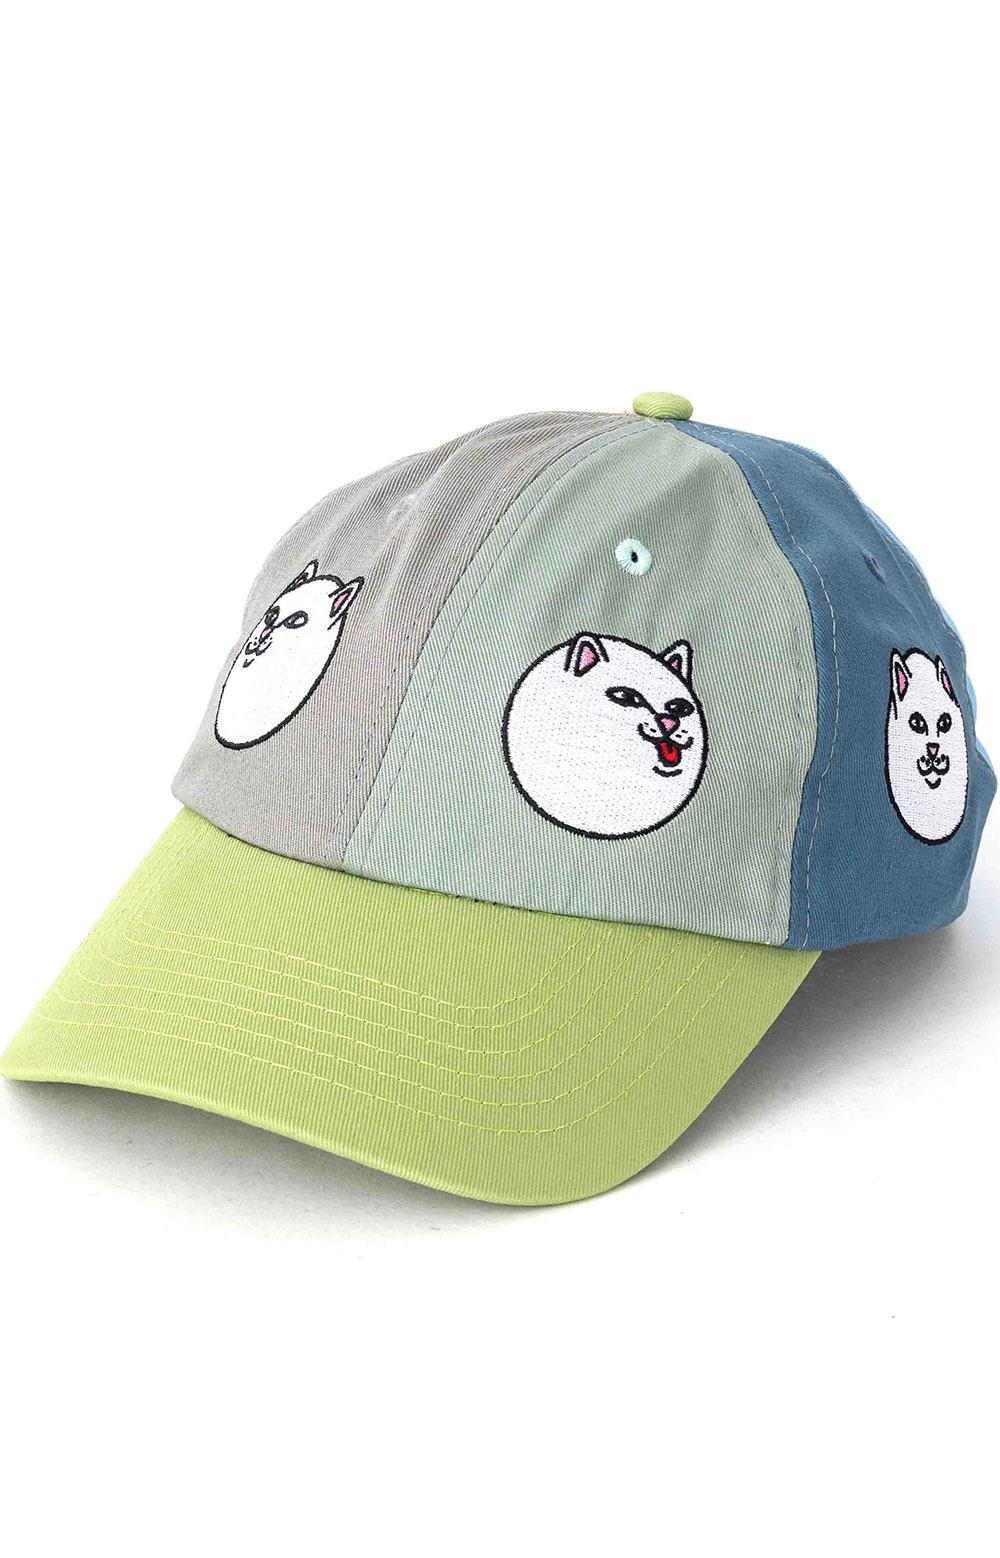 Expressions Strap-Back Hat - Multi